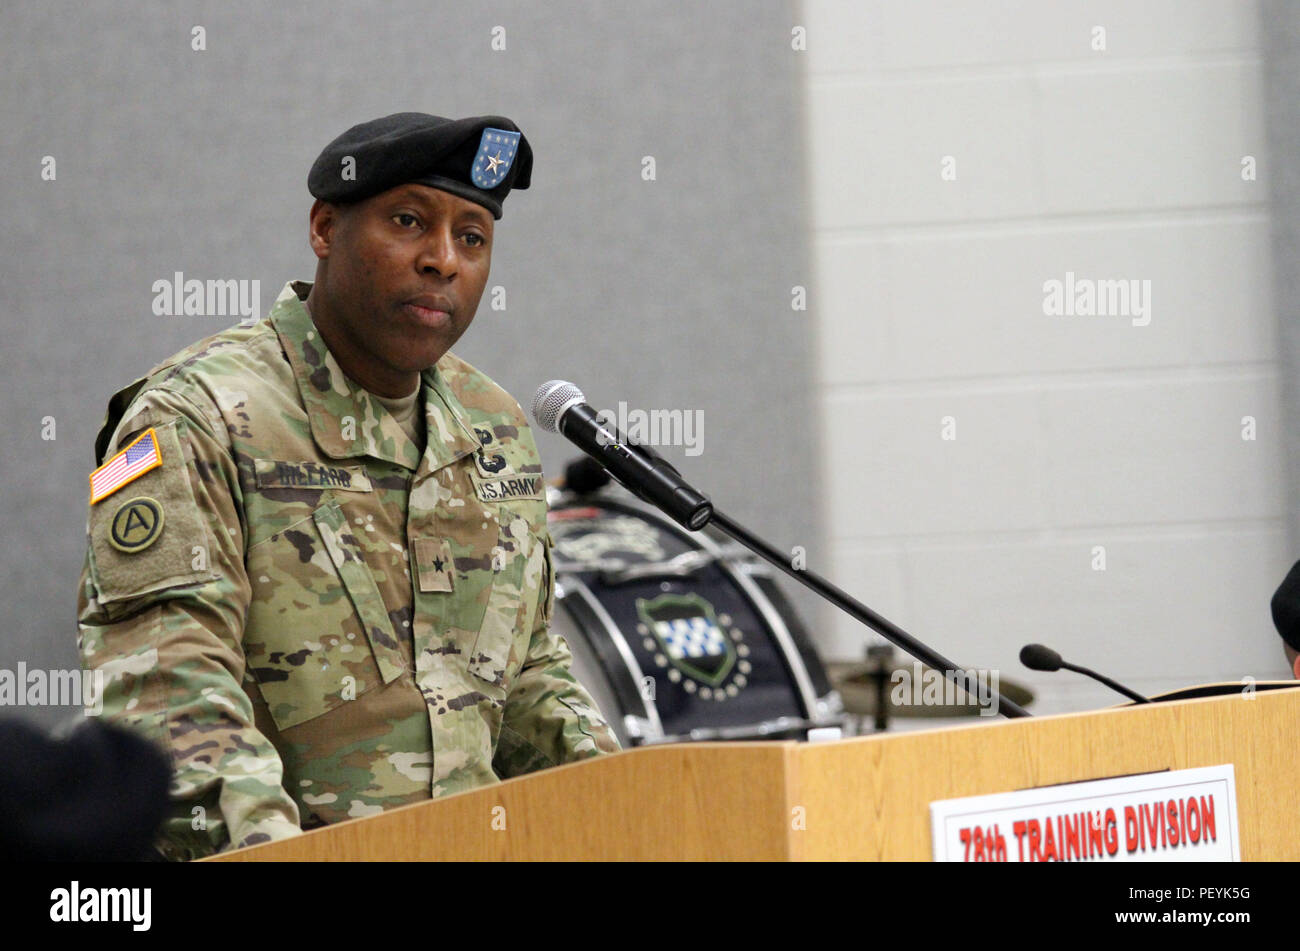 U.S. Army Brig. Gen. Michael Dillard speaks to soldiers during his change of command ceremony at Joint Base McGuire-Dix-Lakehurst, N.J., on Feb. 20, 2016. Stock Photo